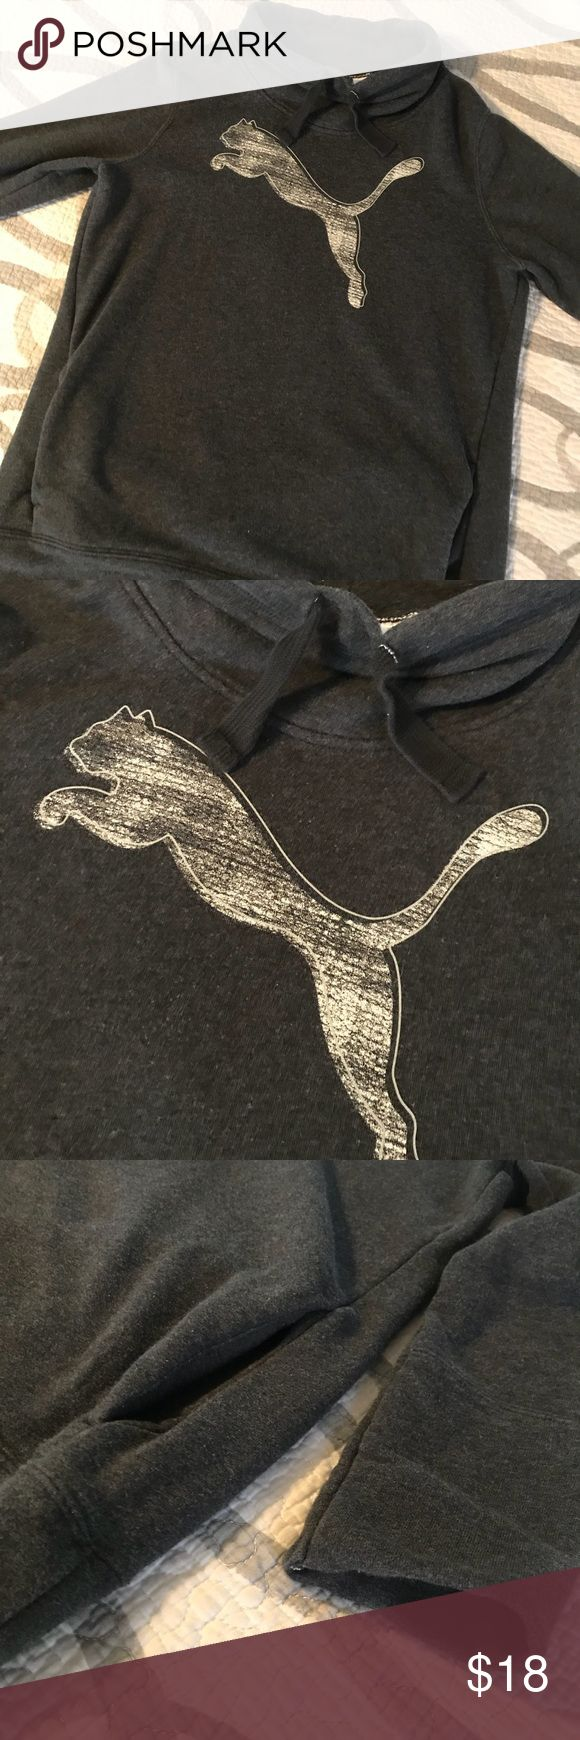 Puma Gray Funnel Neck Pullover Hoodie Puma sweatshirt. Very soft, inside feels almost like a soft terry cloth lining. Front pockets and funnel neck style. Made to fit little looser, flares out a tiny bit towards the bottom and the sleeves are little loose. No thumb holes. Gently used. Puma Tops Sweatshirts & Hoodies